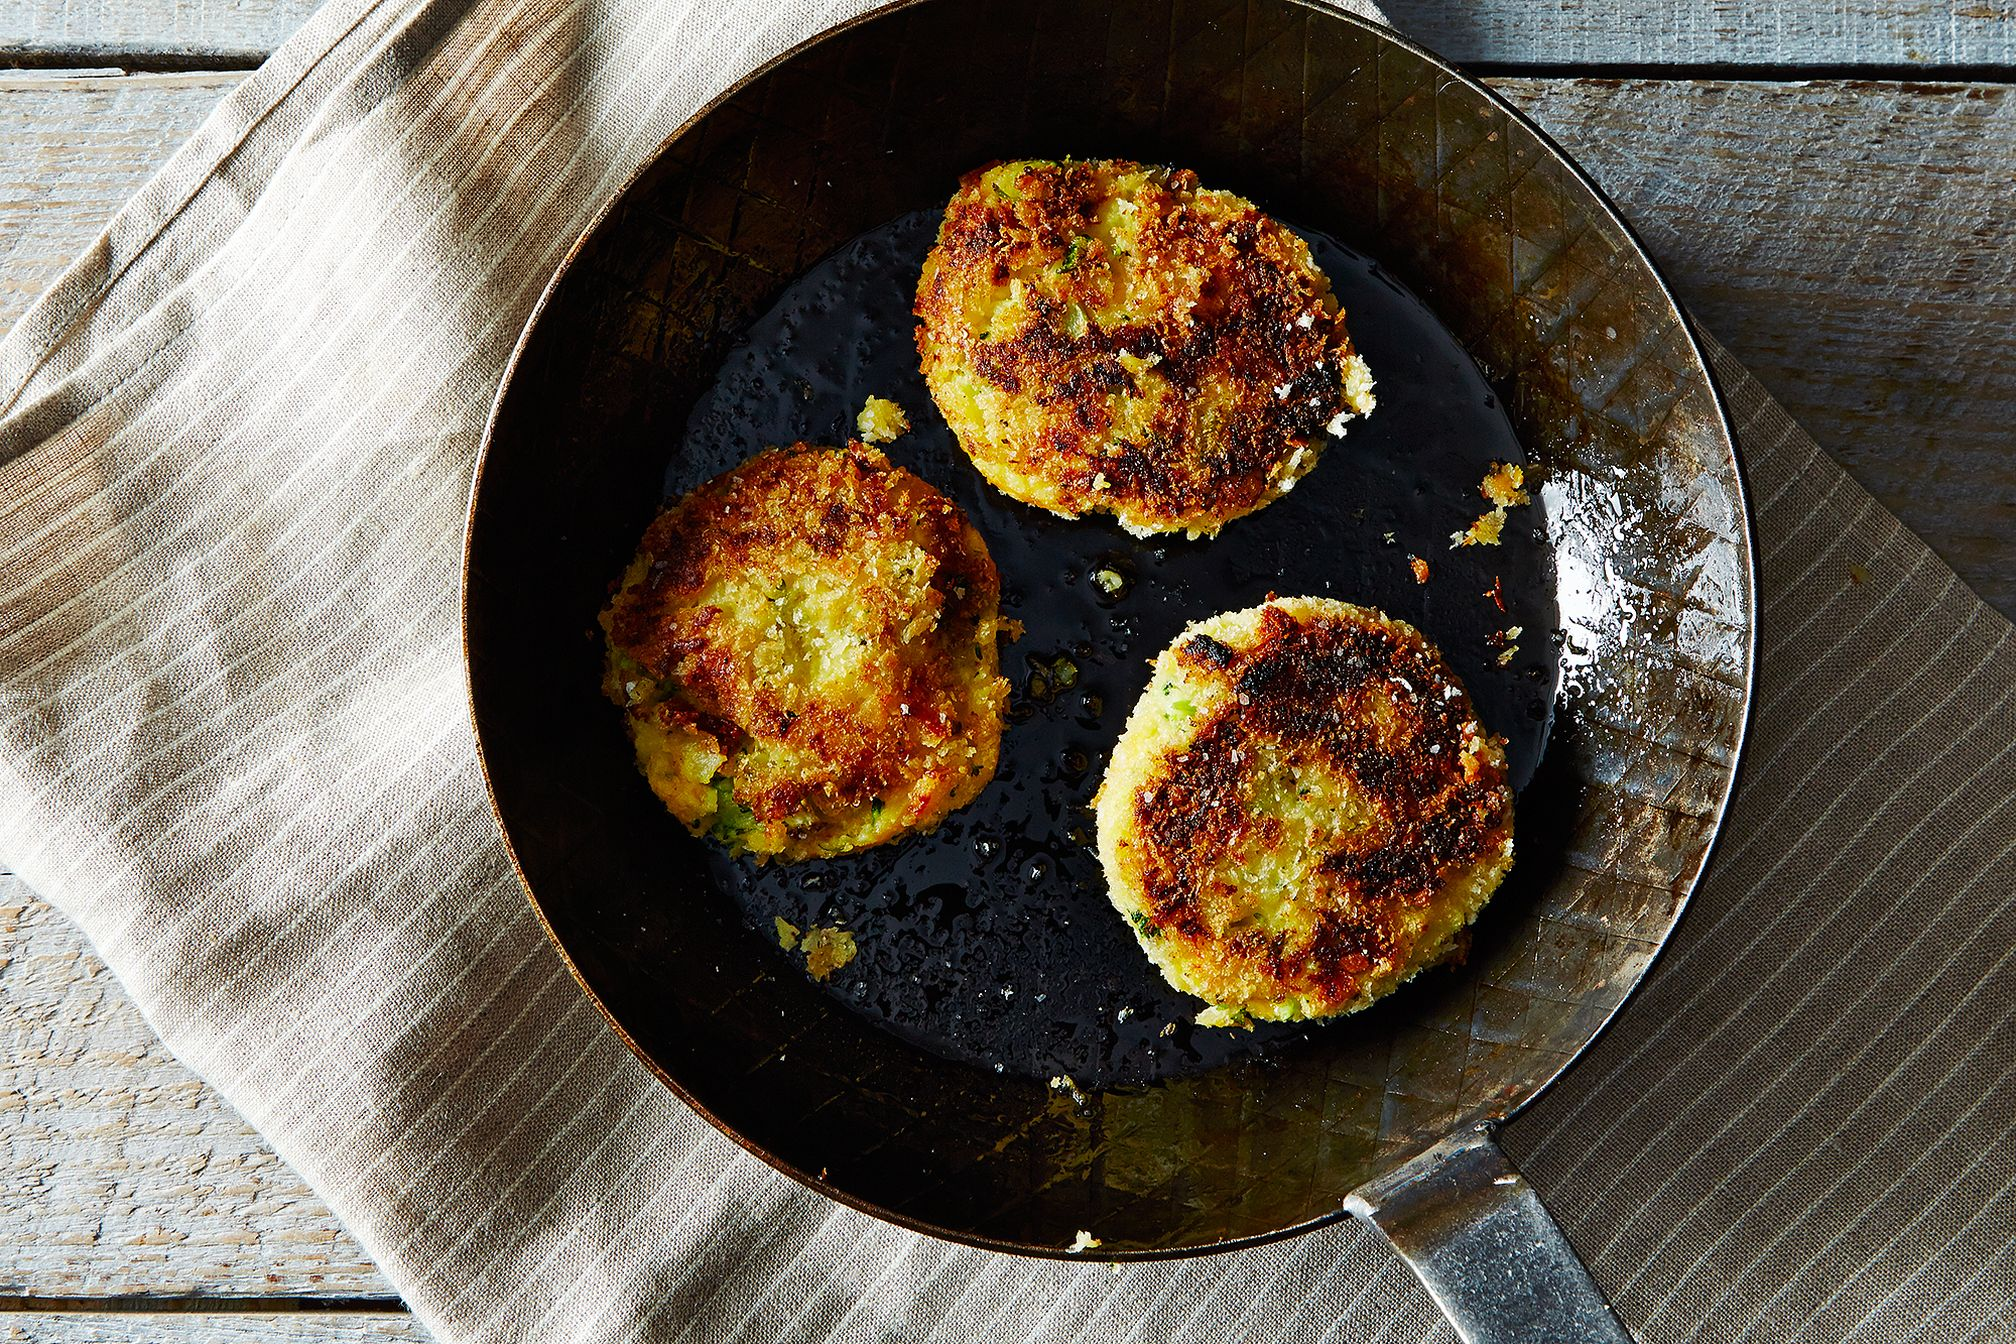 Mashed Potato Cakes with Broccoli and Cheese Recipe on Food52